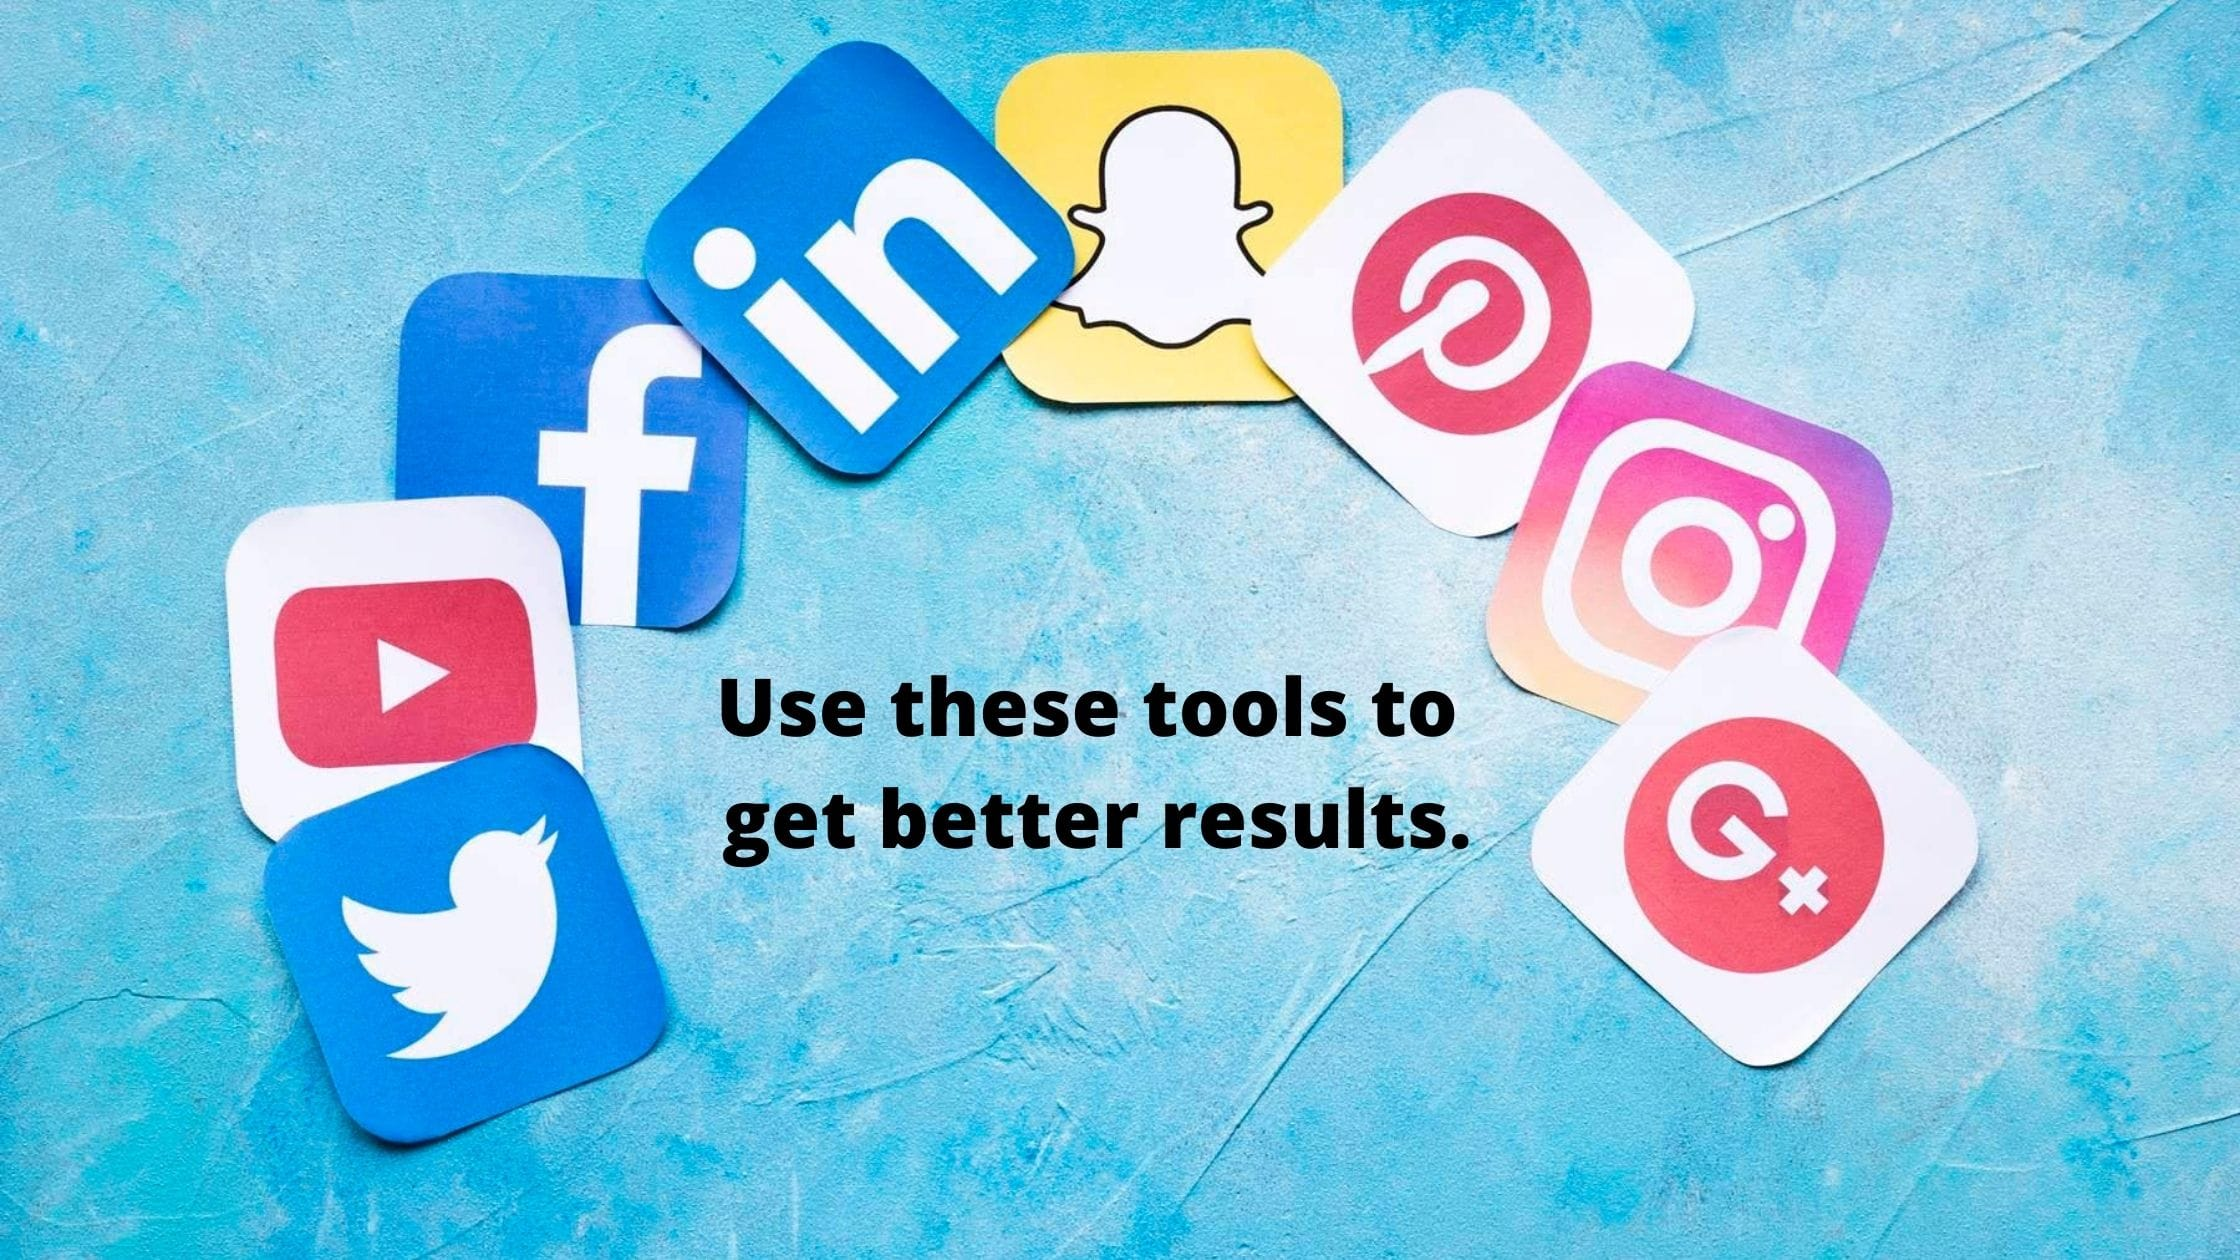 7 Best Small Business Tools For Social Media